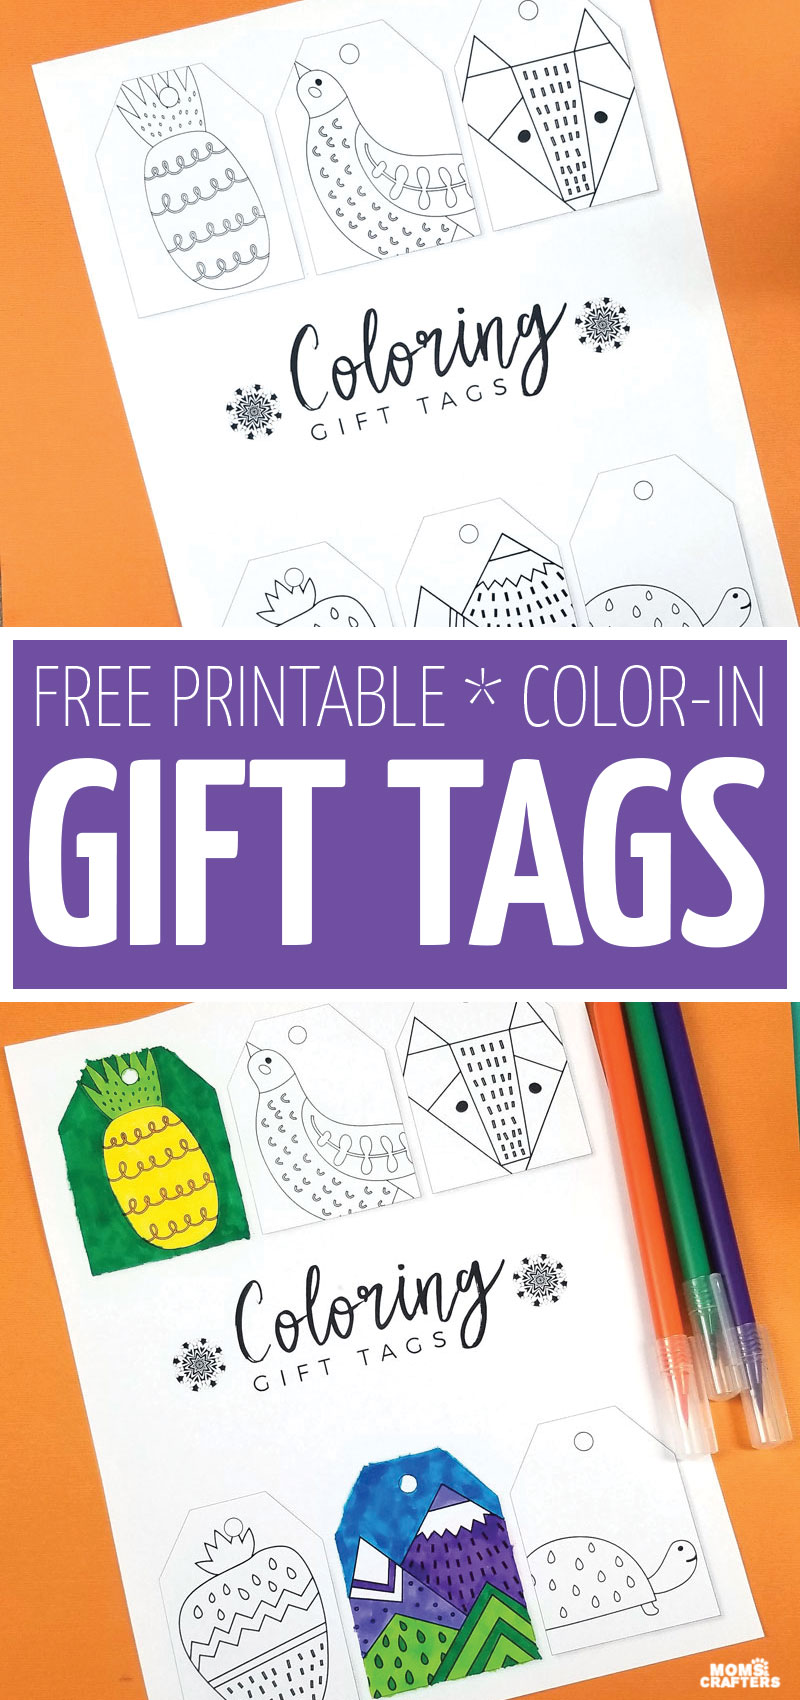 color your own gift tags with these free printable gift tags - perfect for Christmas, Hanukkah, or any time of year! These cool coloring pages for kids and adults are the perfect addition to any gift.